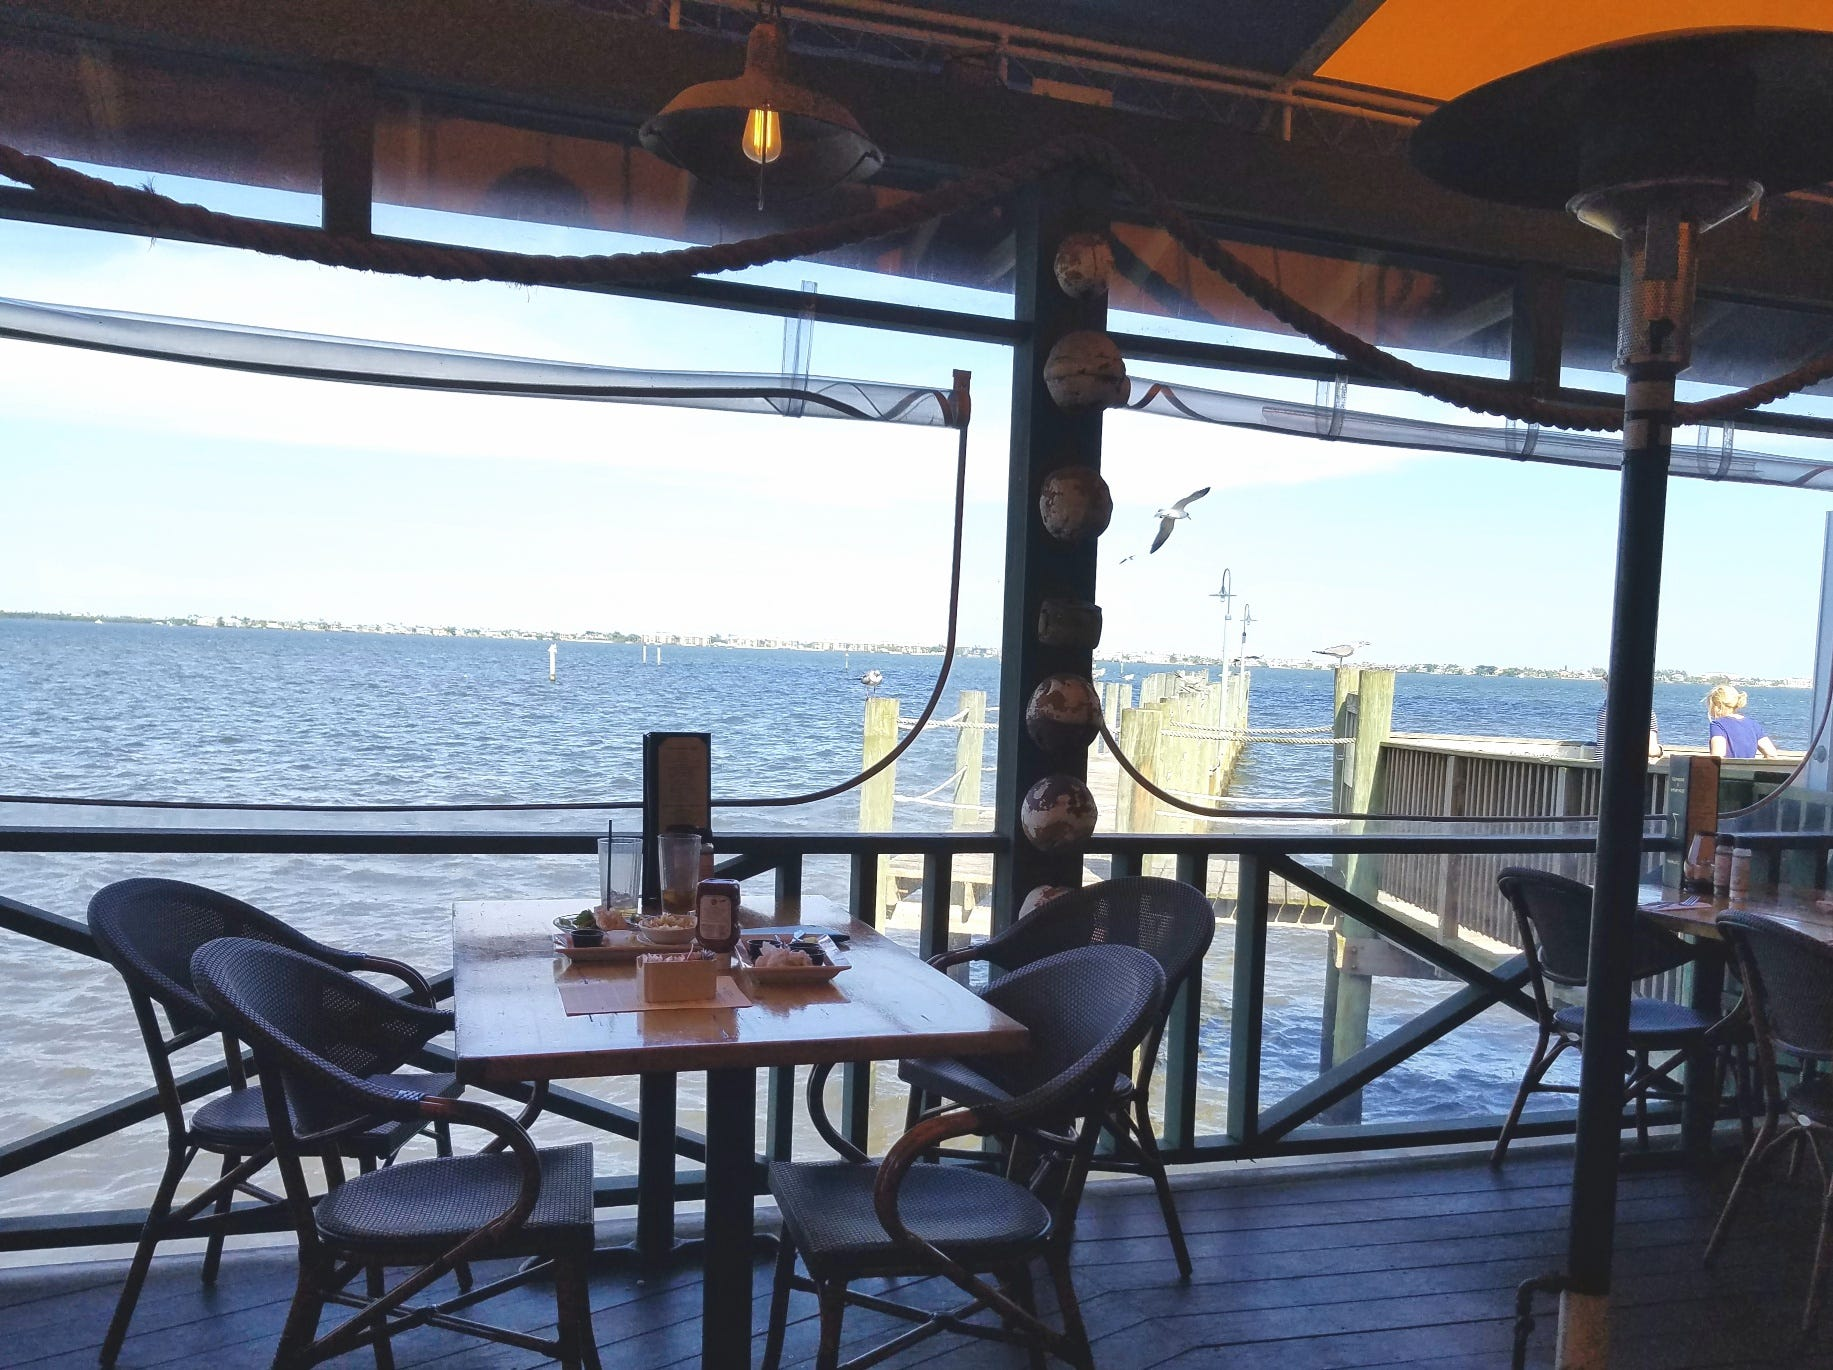 The outdoor deck provides a lovely view of the Intercoastal Waterway.